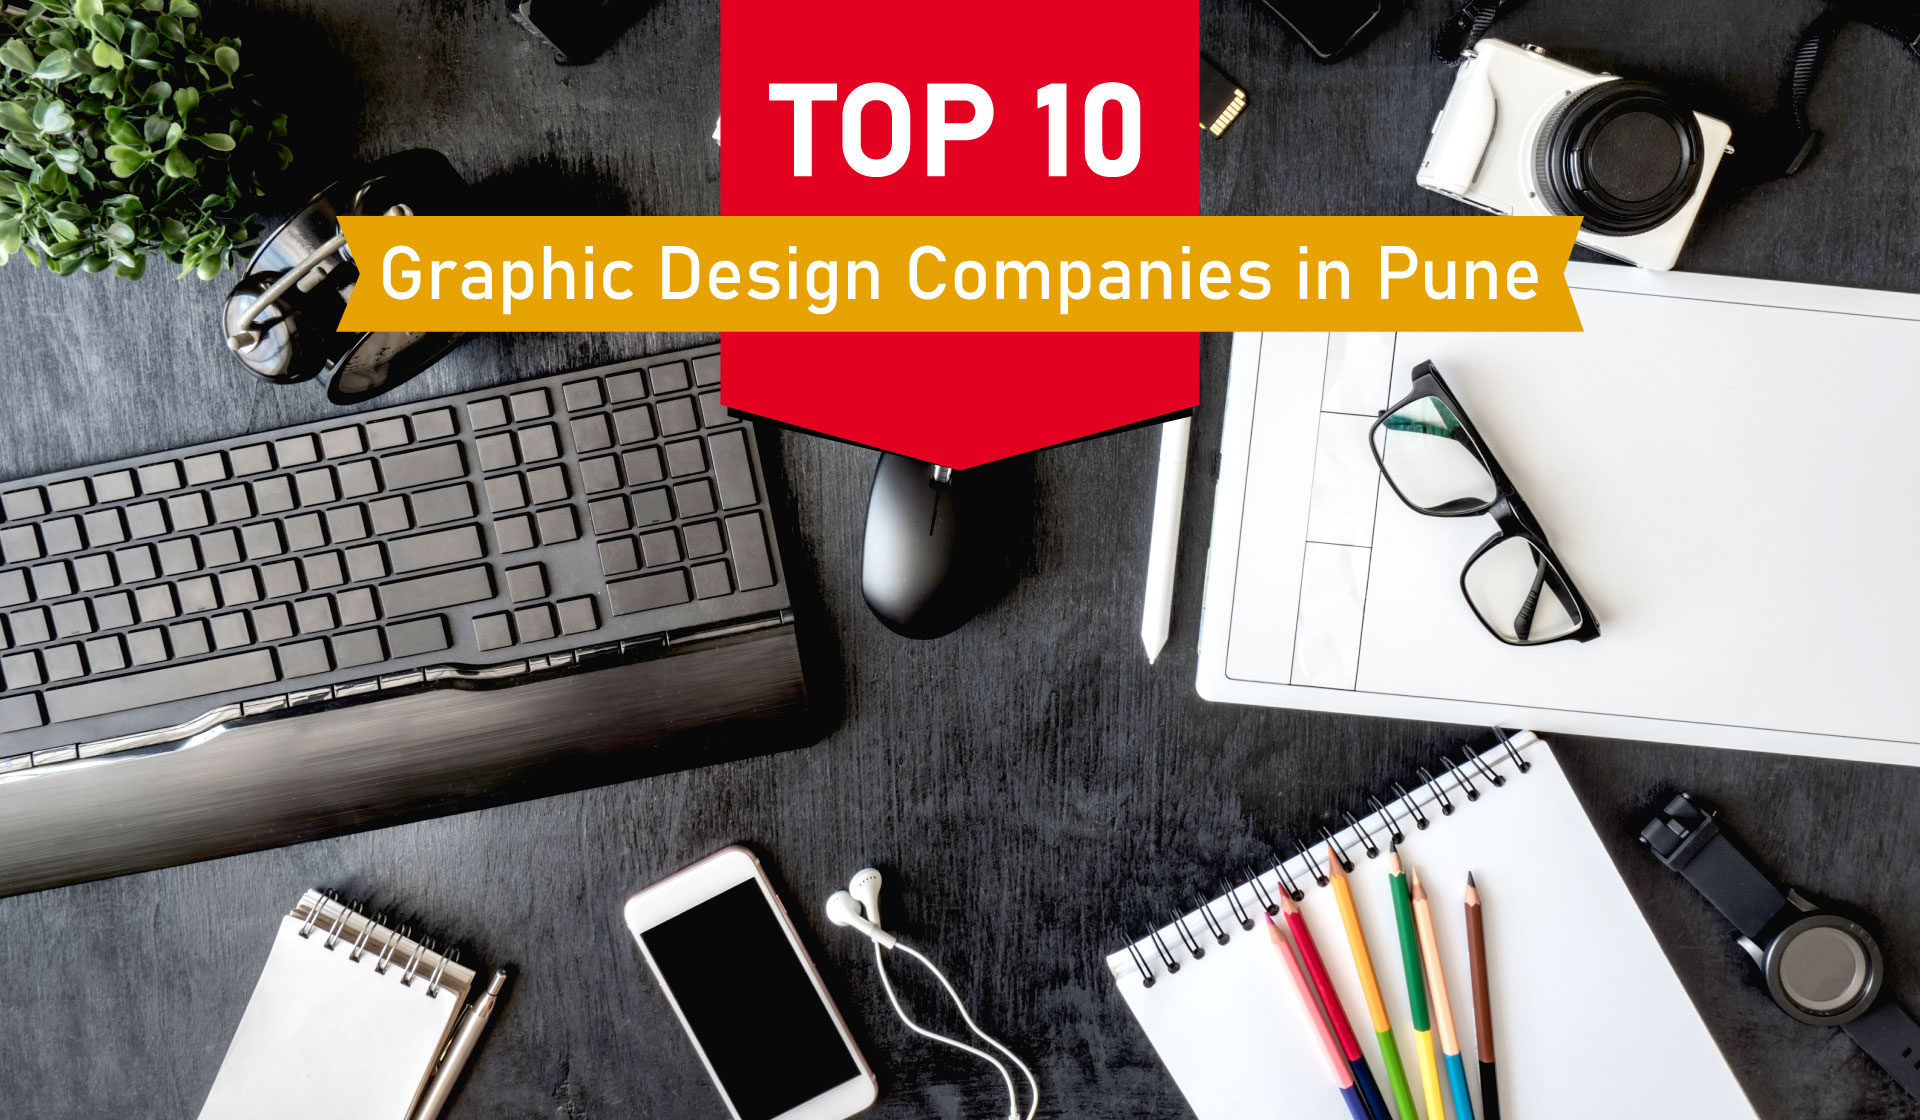 Top 10 Graphic Design Companies in Pune